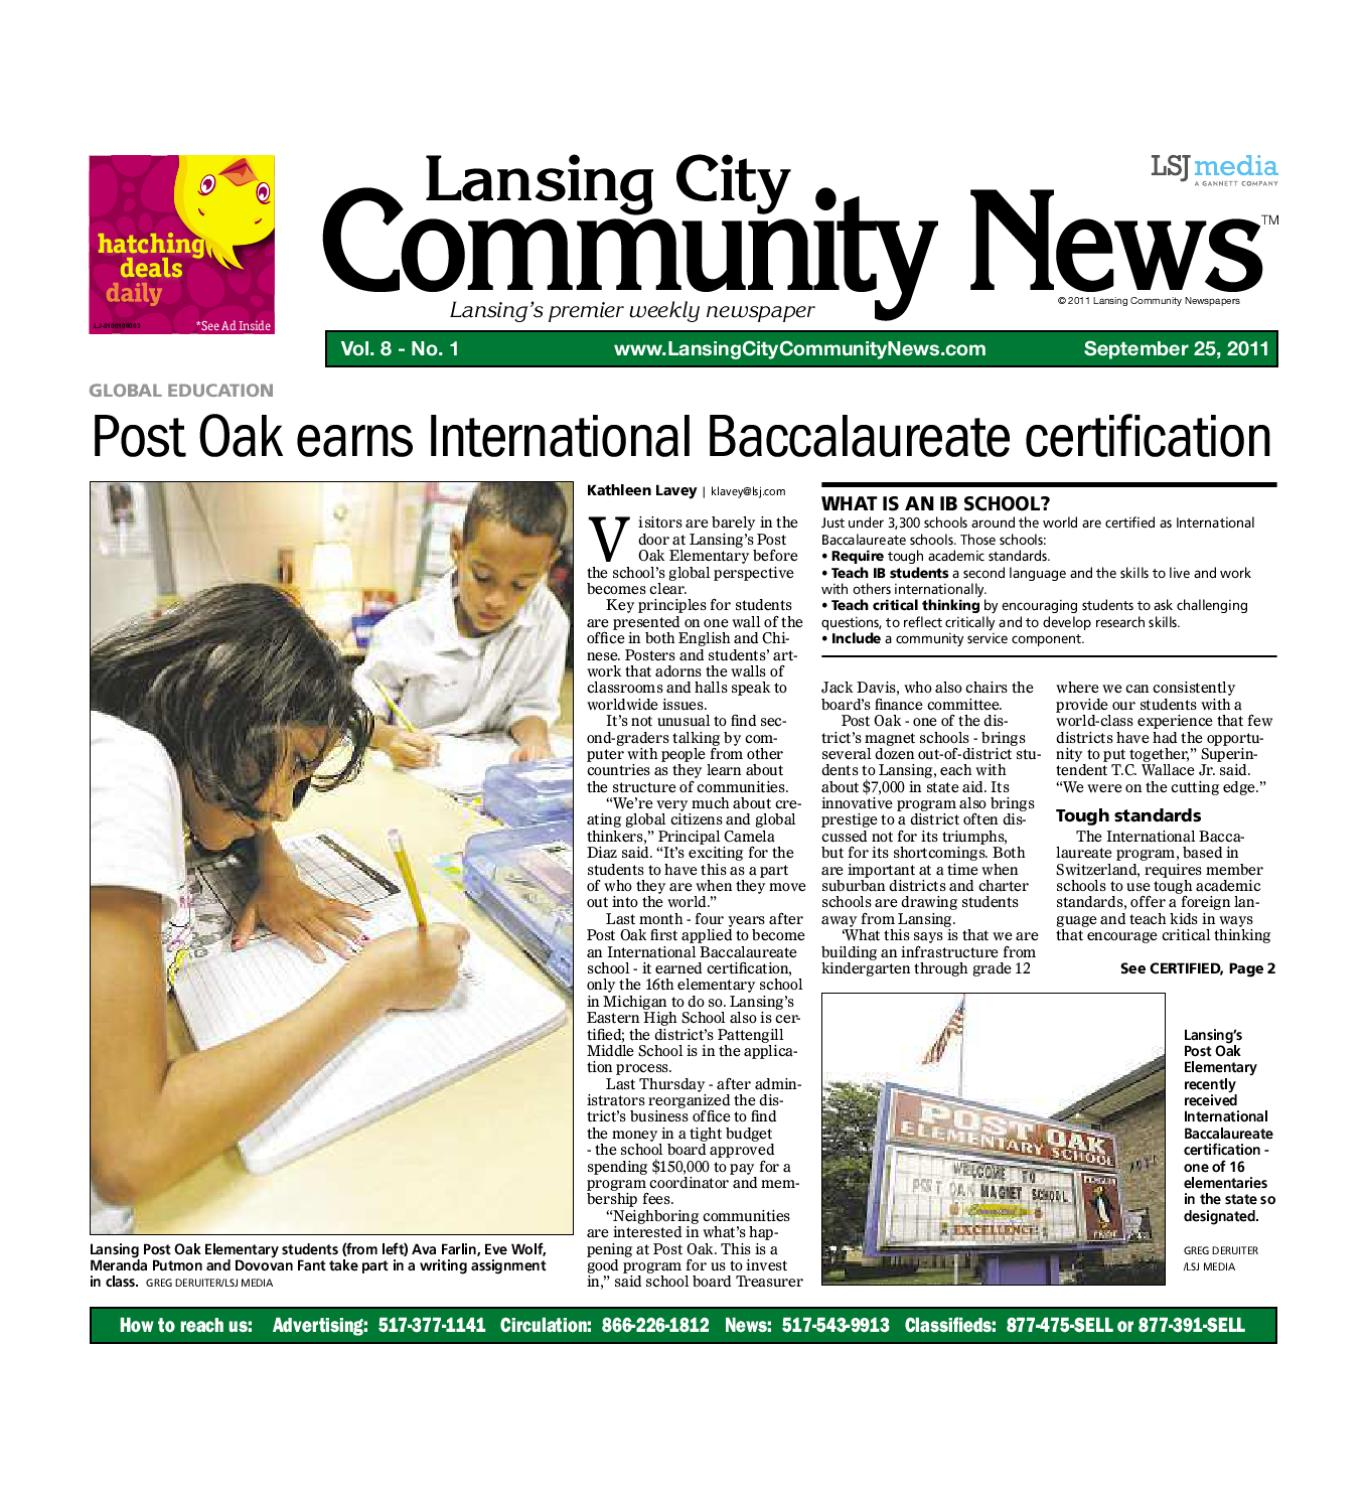 /lccn_09_25_11 by Lansing State Journal - Issuu